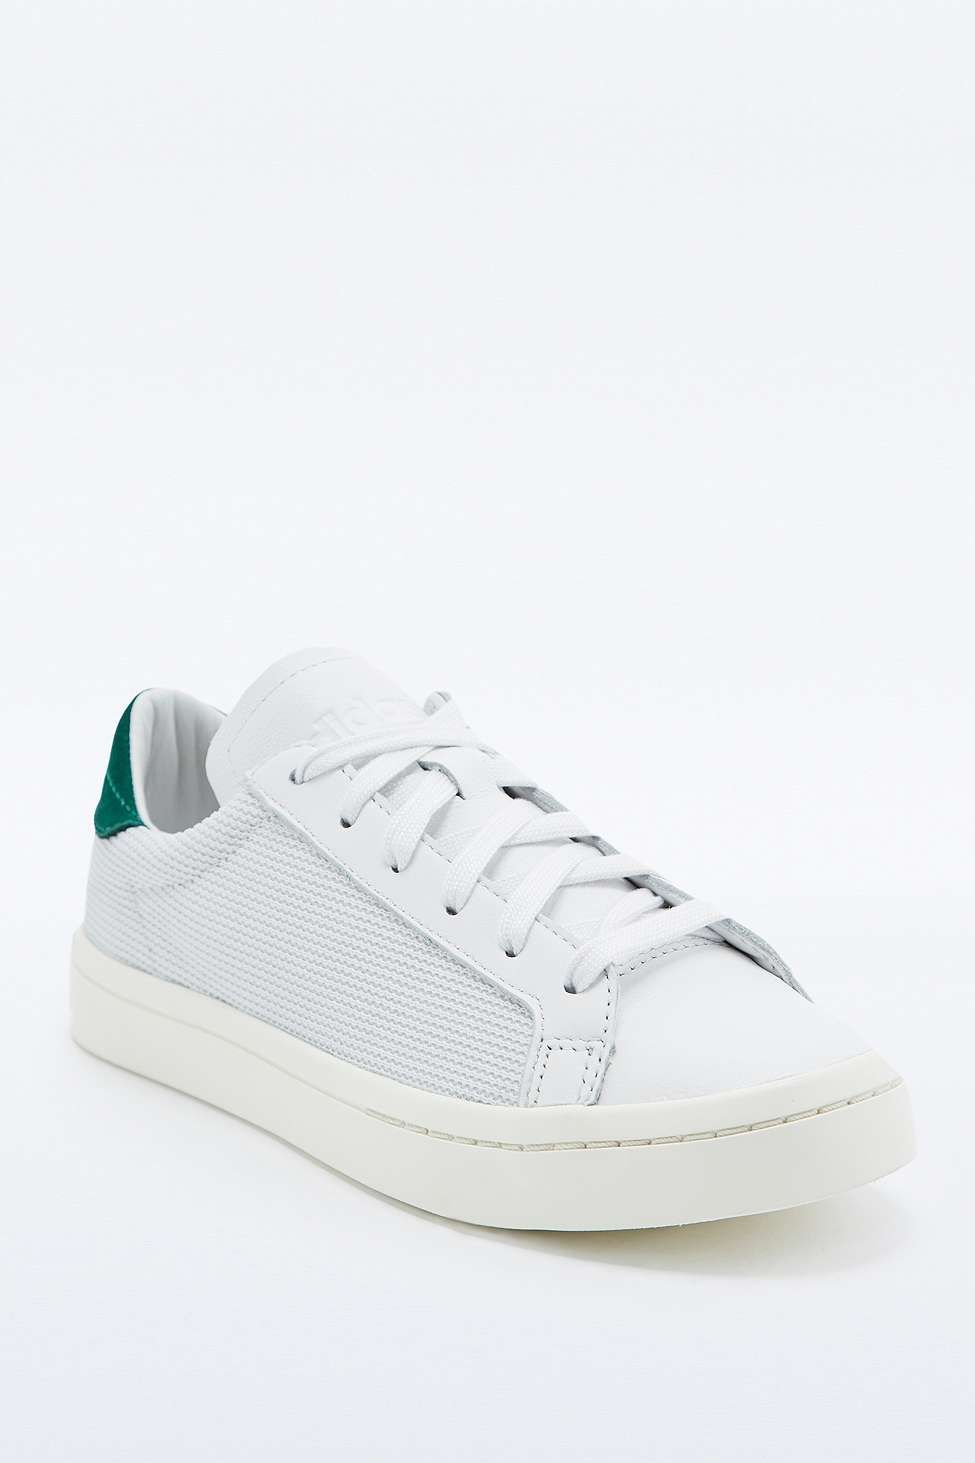 meet 65cc8 62077 adidas Originals Court Vantage White and Green Nubuck Trainers - Urban  Outfitters